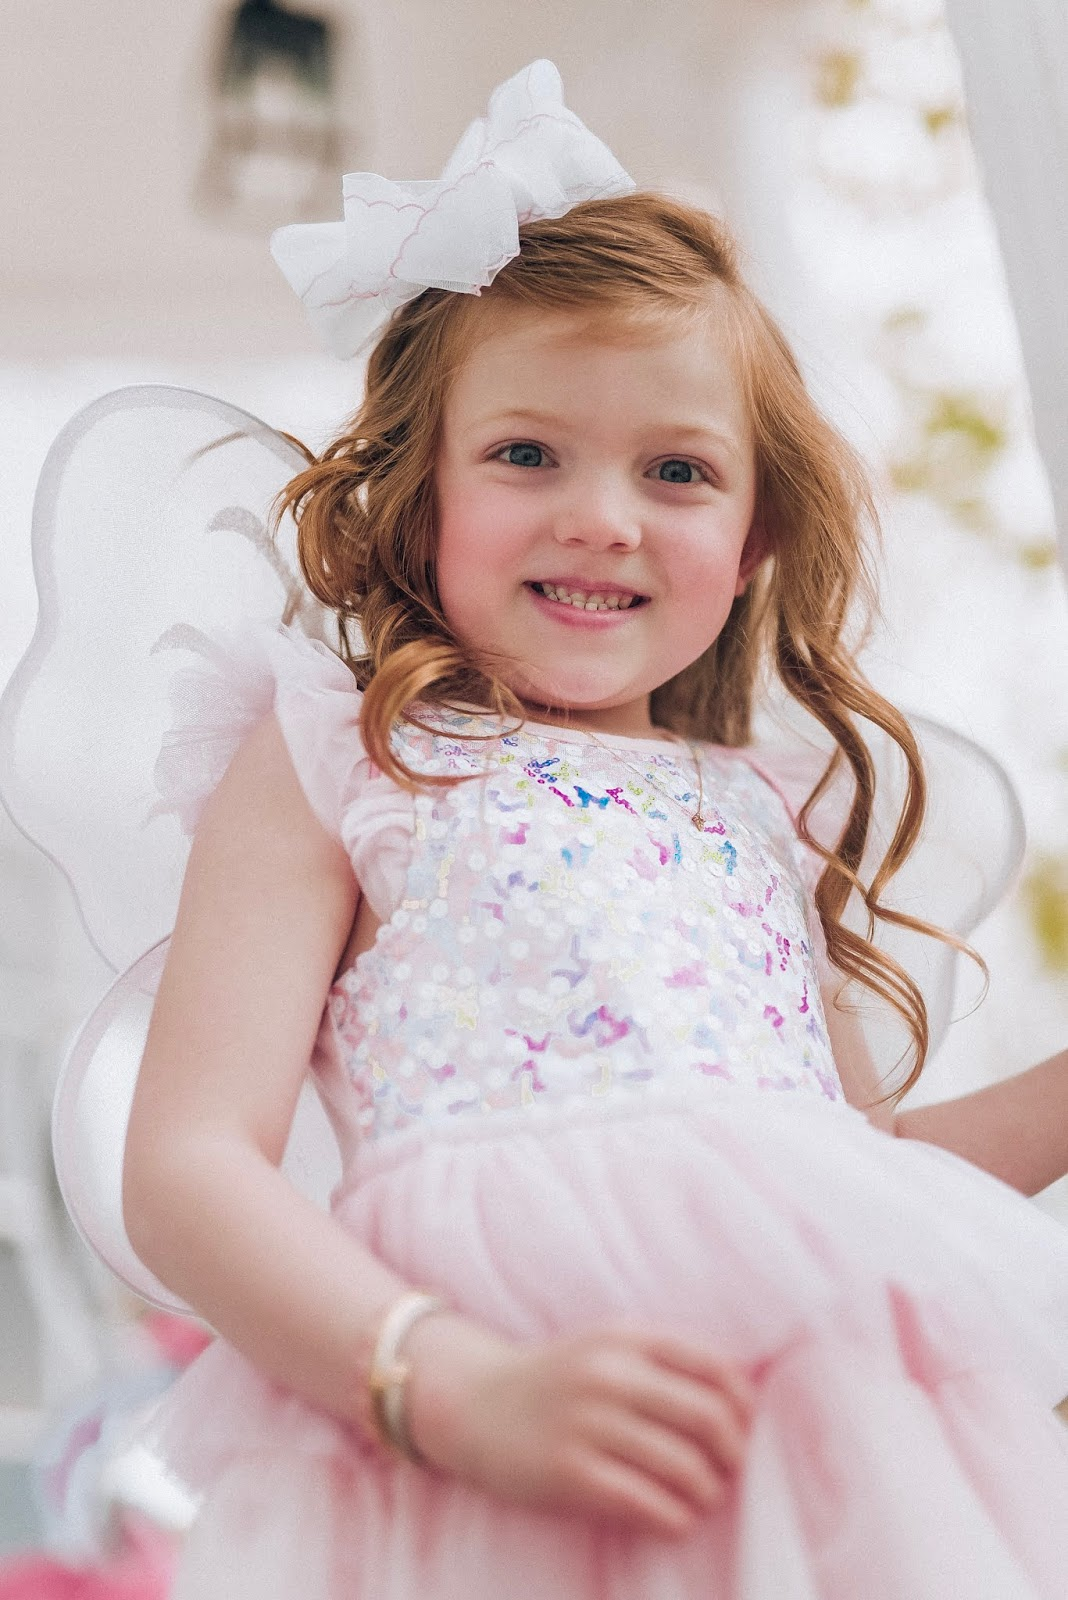 Happy 5th Birthday Madeline + a Little Message on Your Birthday - Something Delightful Blog